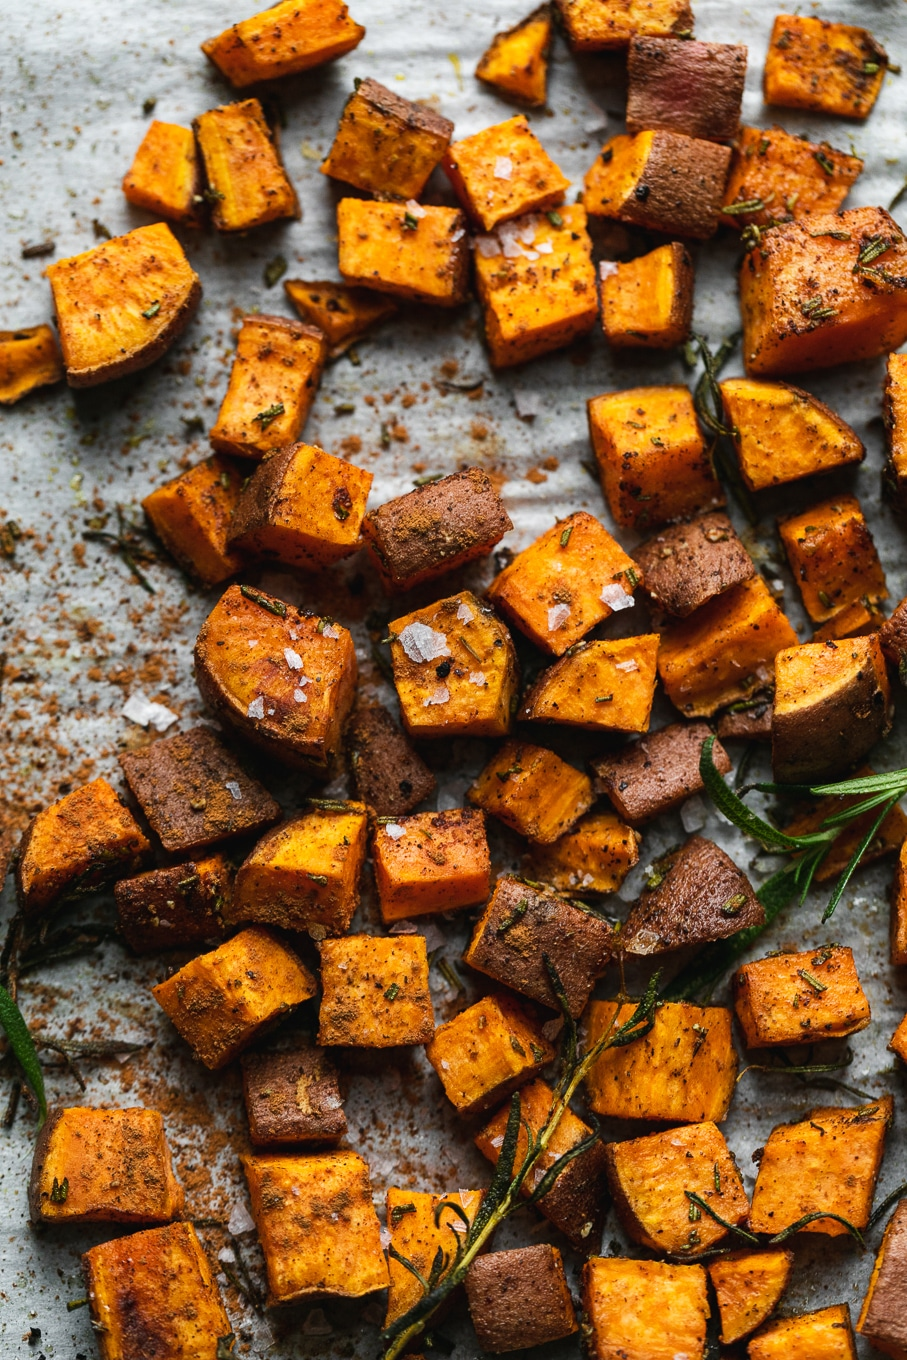 Overhead close up shot of diced roasted sweet potatoes